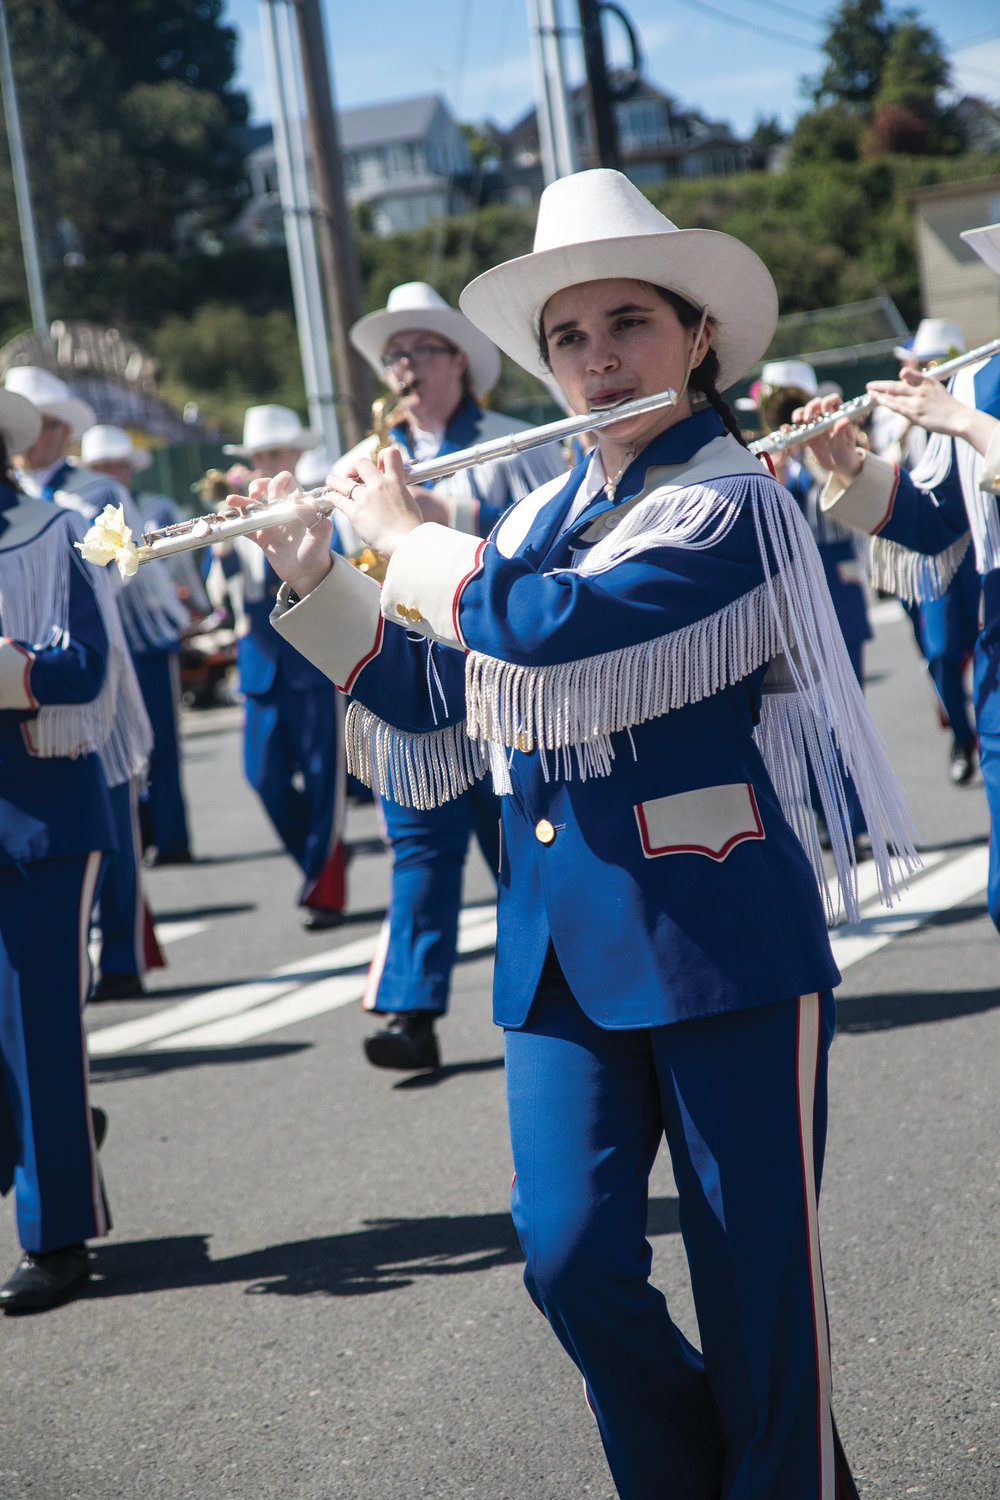 The Chimacum High School Marching Band played tunes down Monroe Street at the Grand Parade.